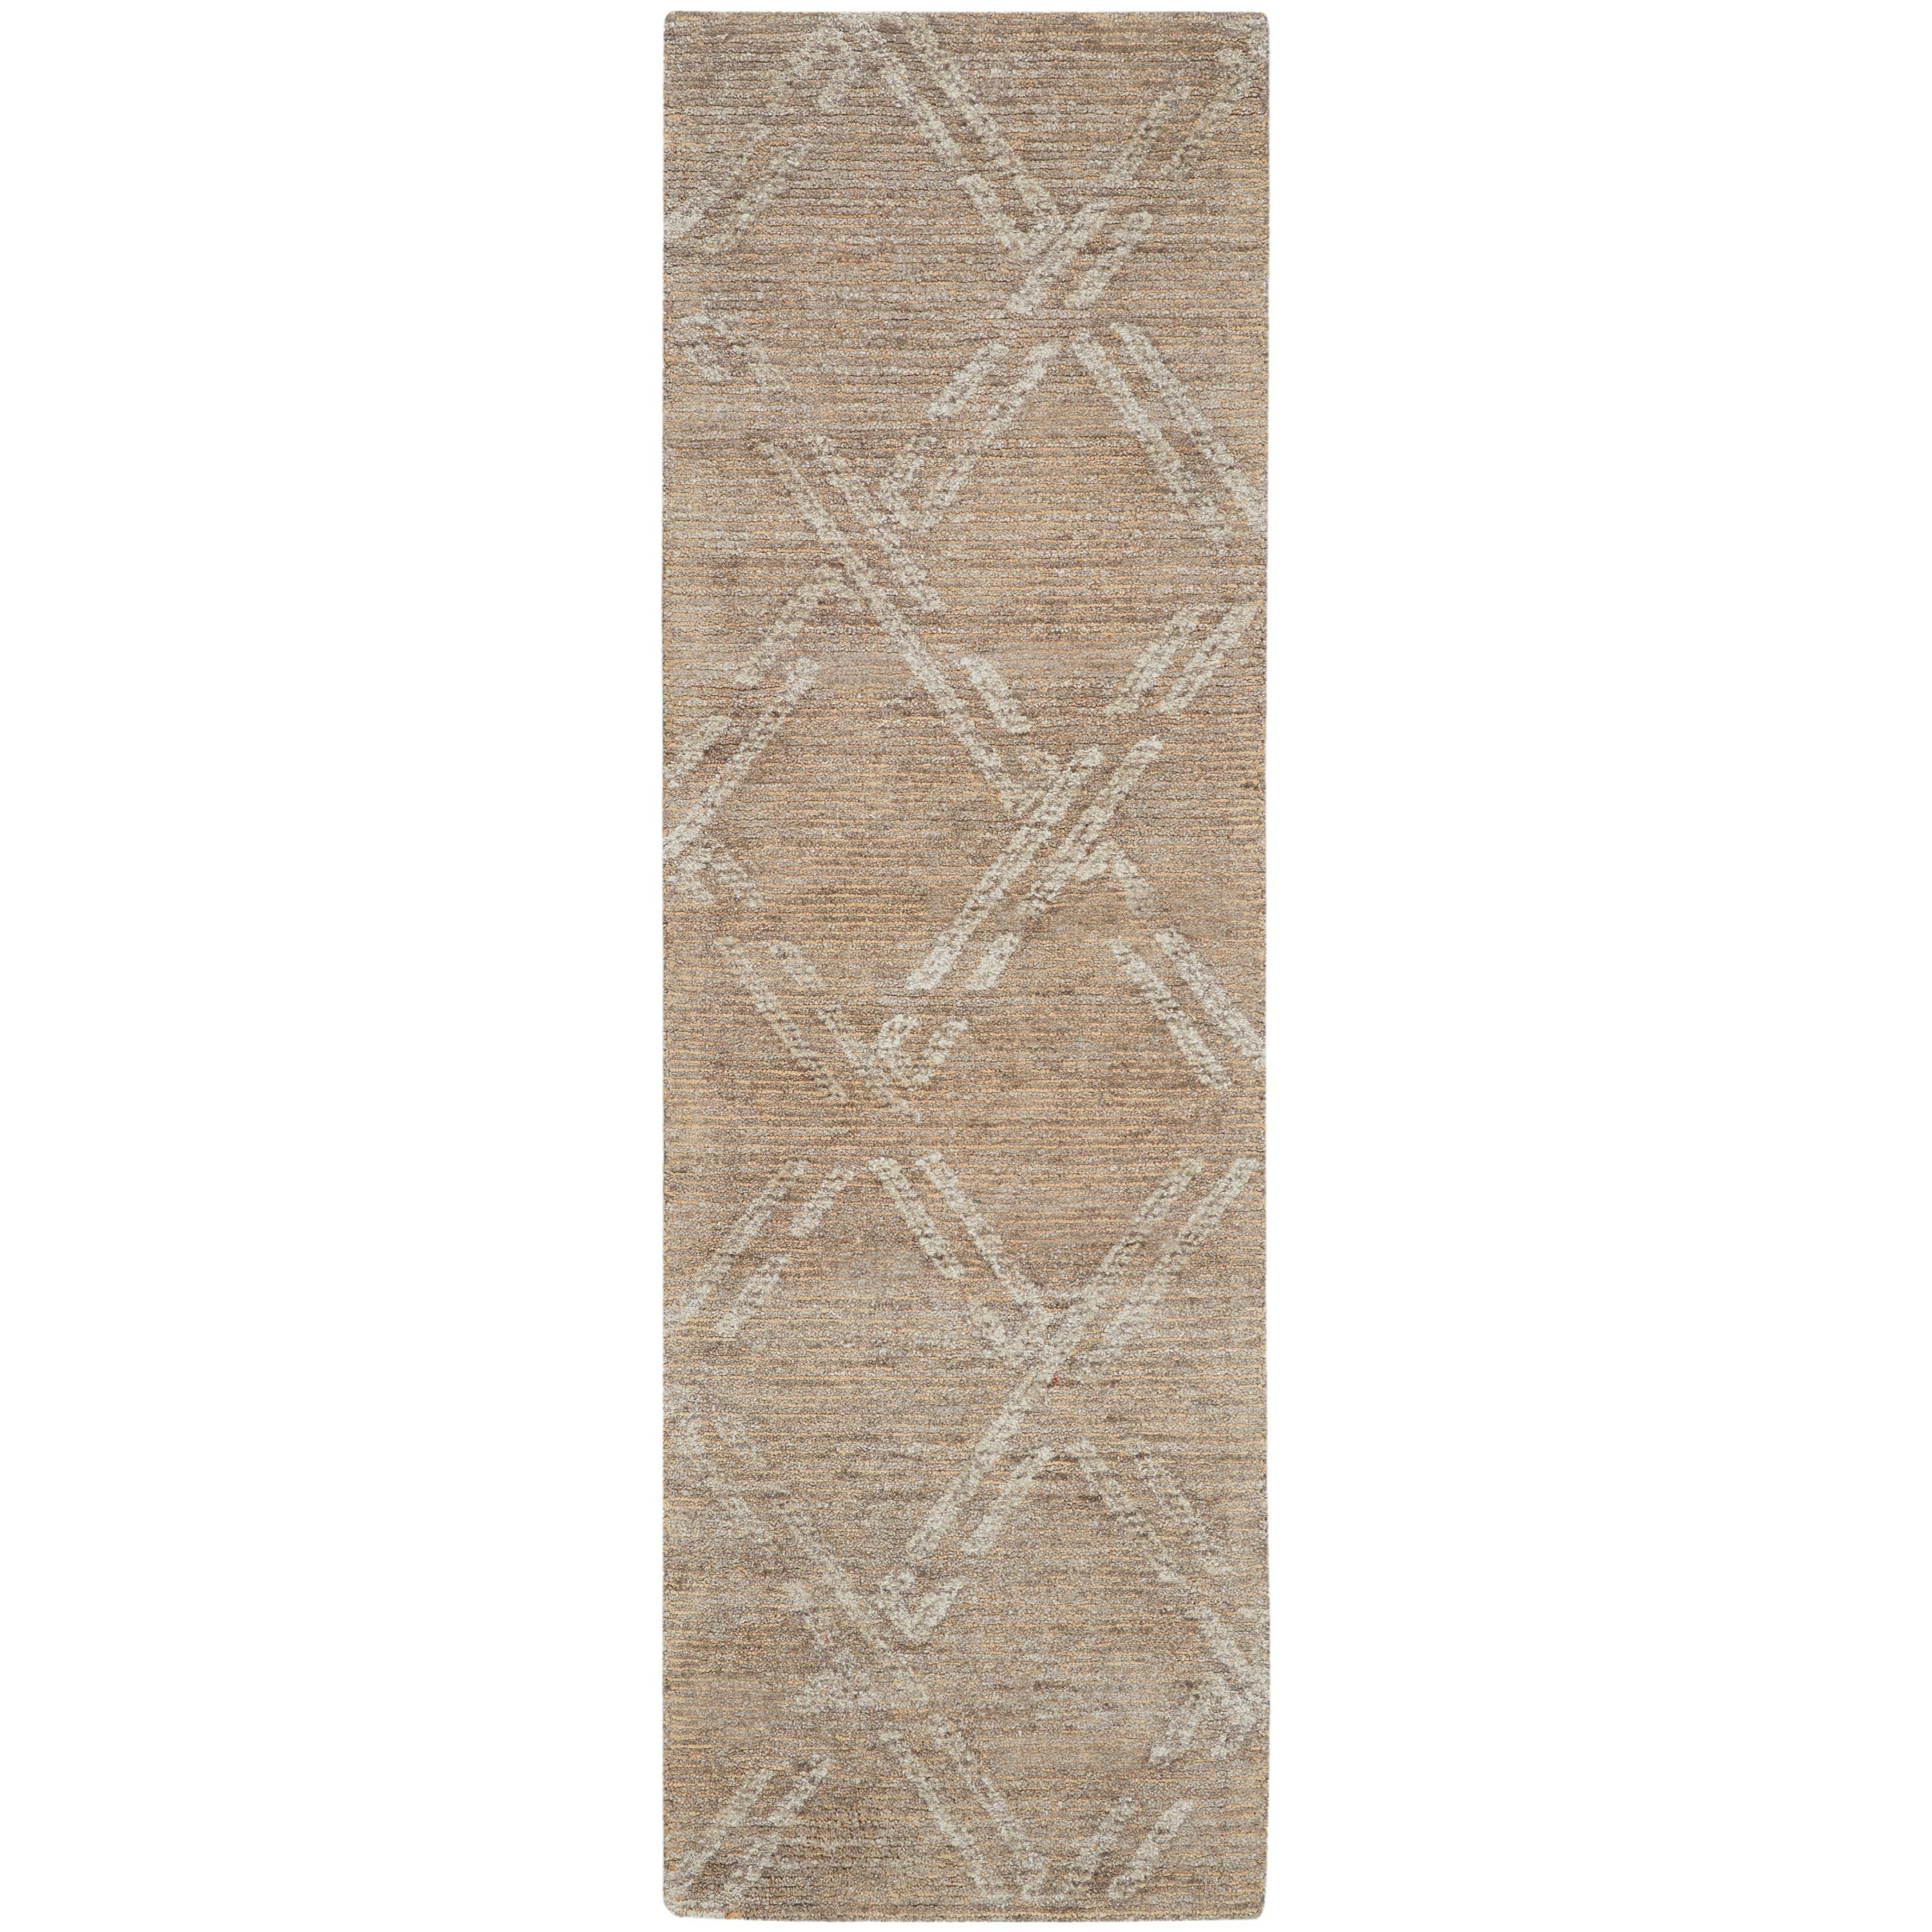 Venosa 2020 8' Runner Rug by Nourison at Home Collections Furniture